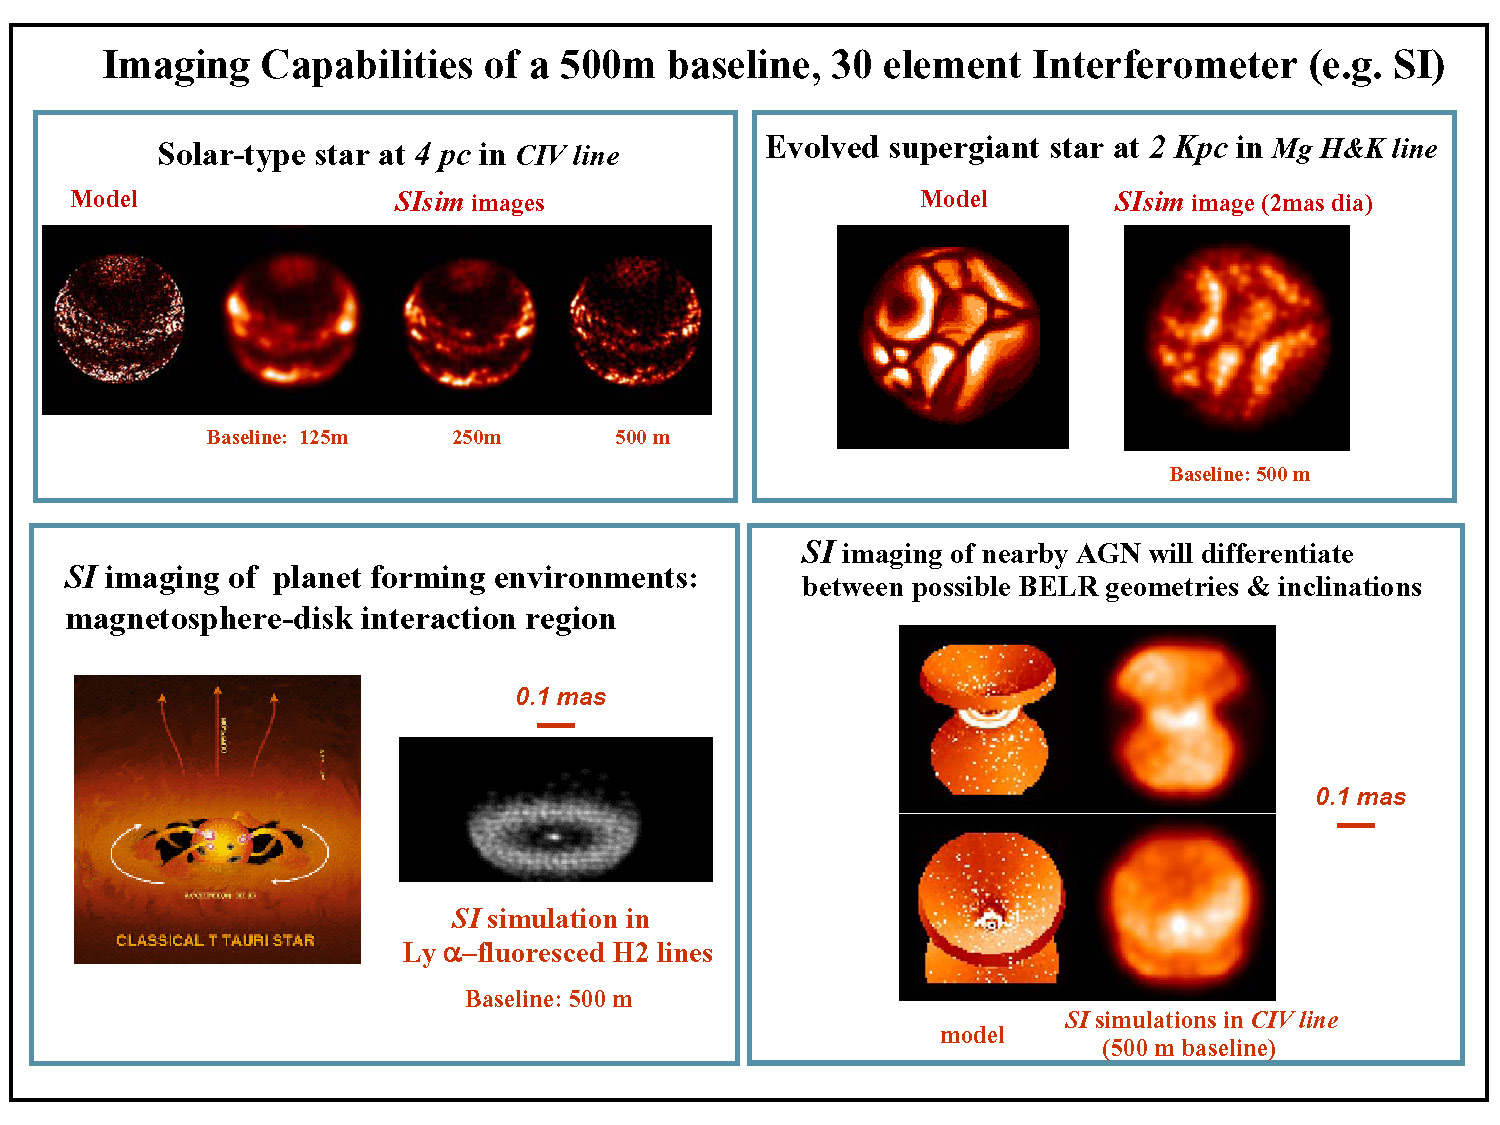 Simulations of Imaging Capabilities of a 500m baseline,  								30-element Interferometer (e.g. SI)